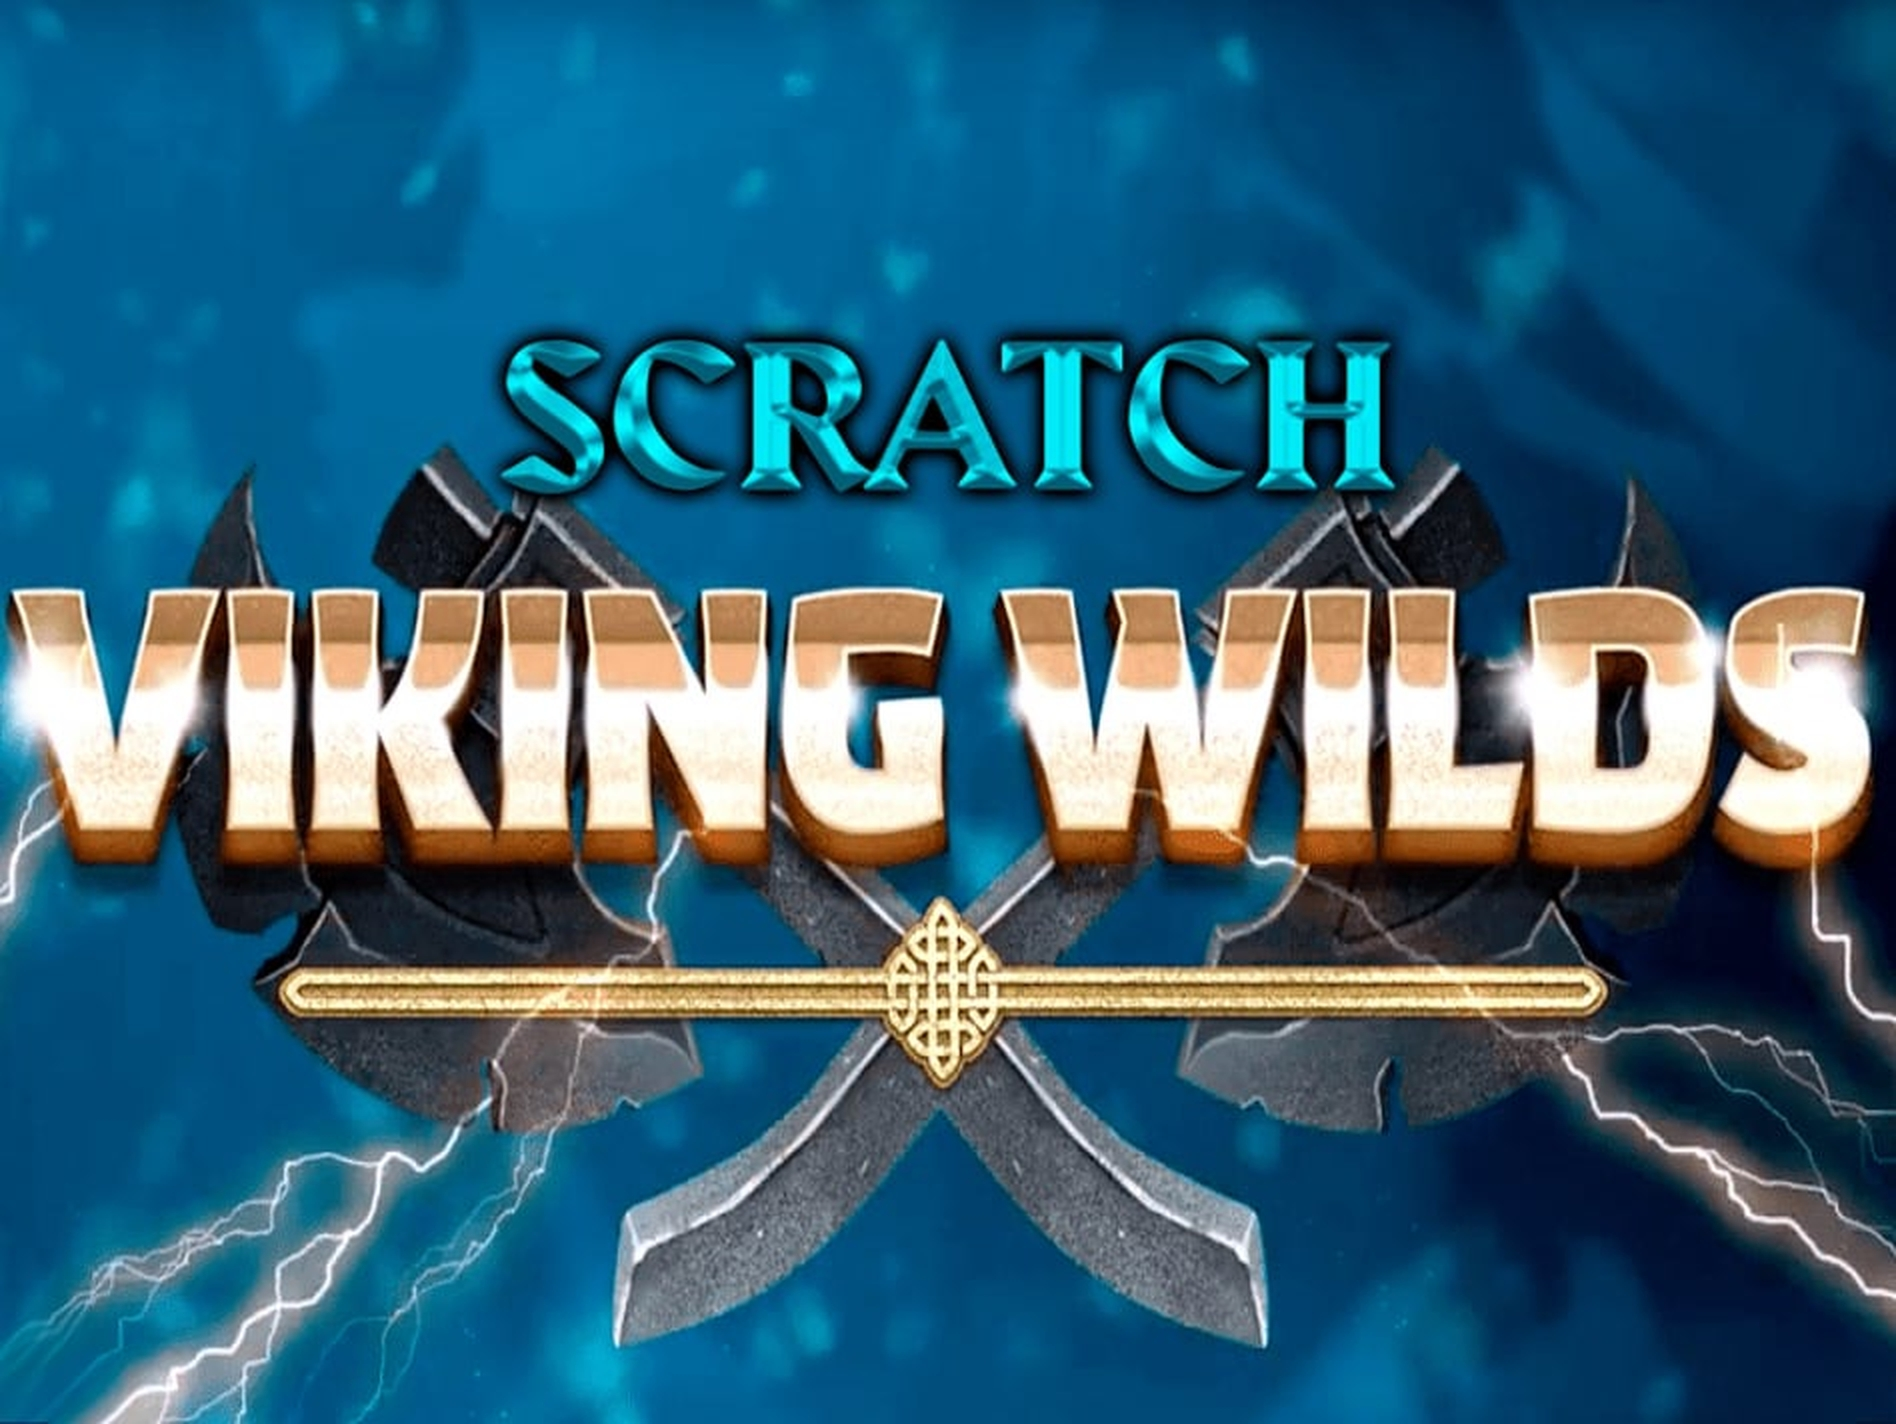 The Viking Wilds Scratch Online Slot Demo Game by IronDog